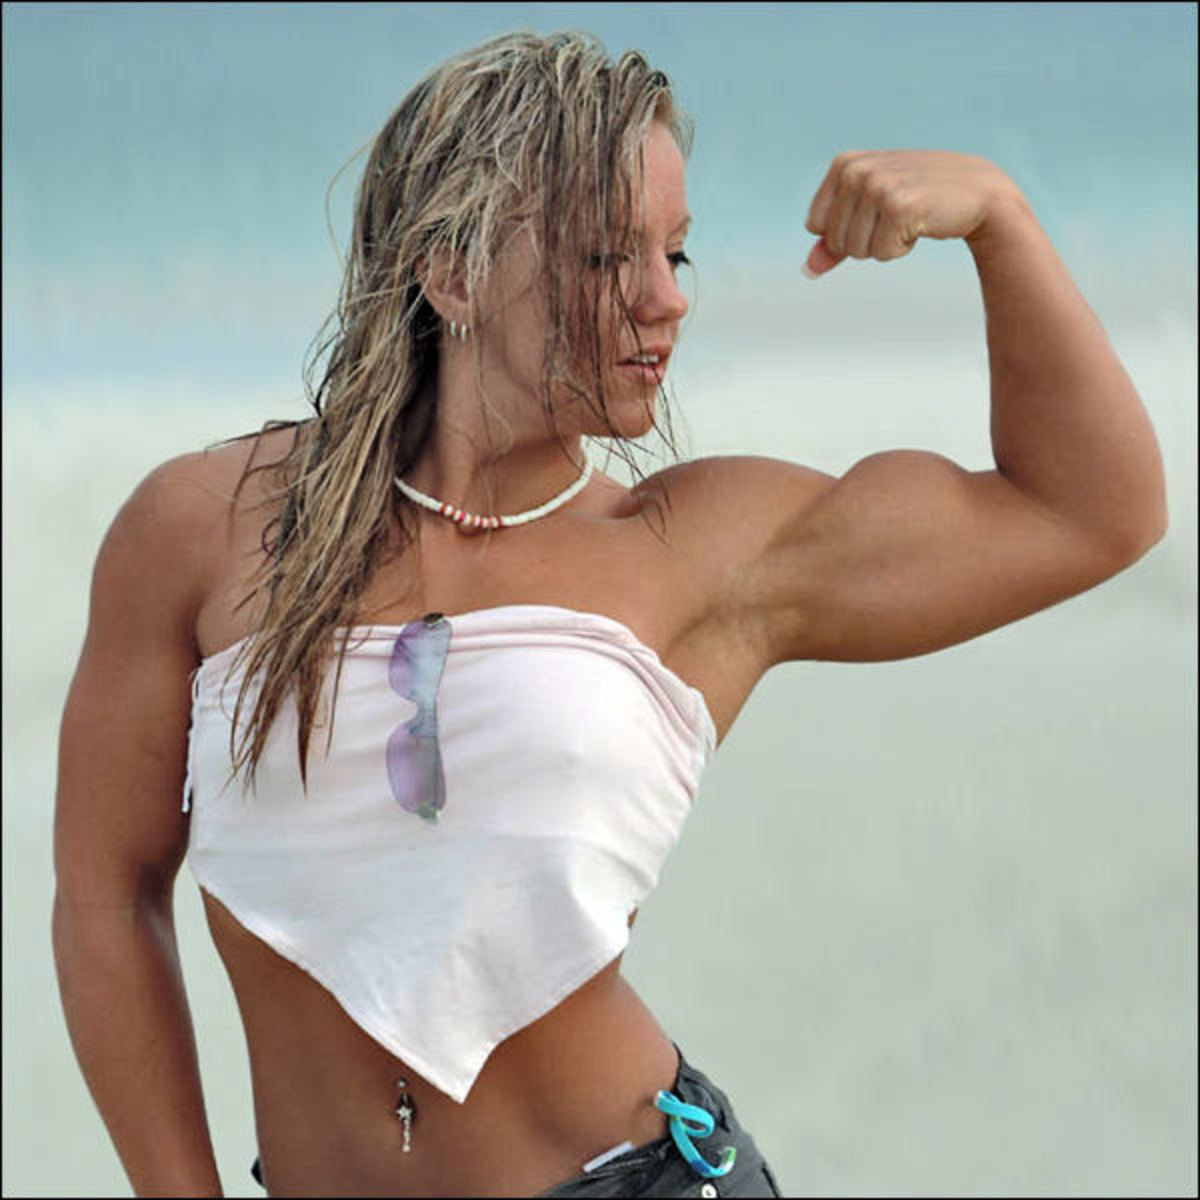 Female bodybuilder Cindy Phillips